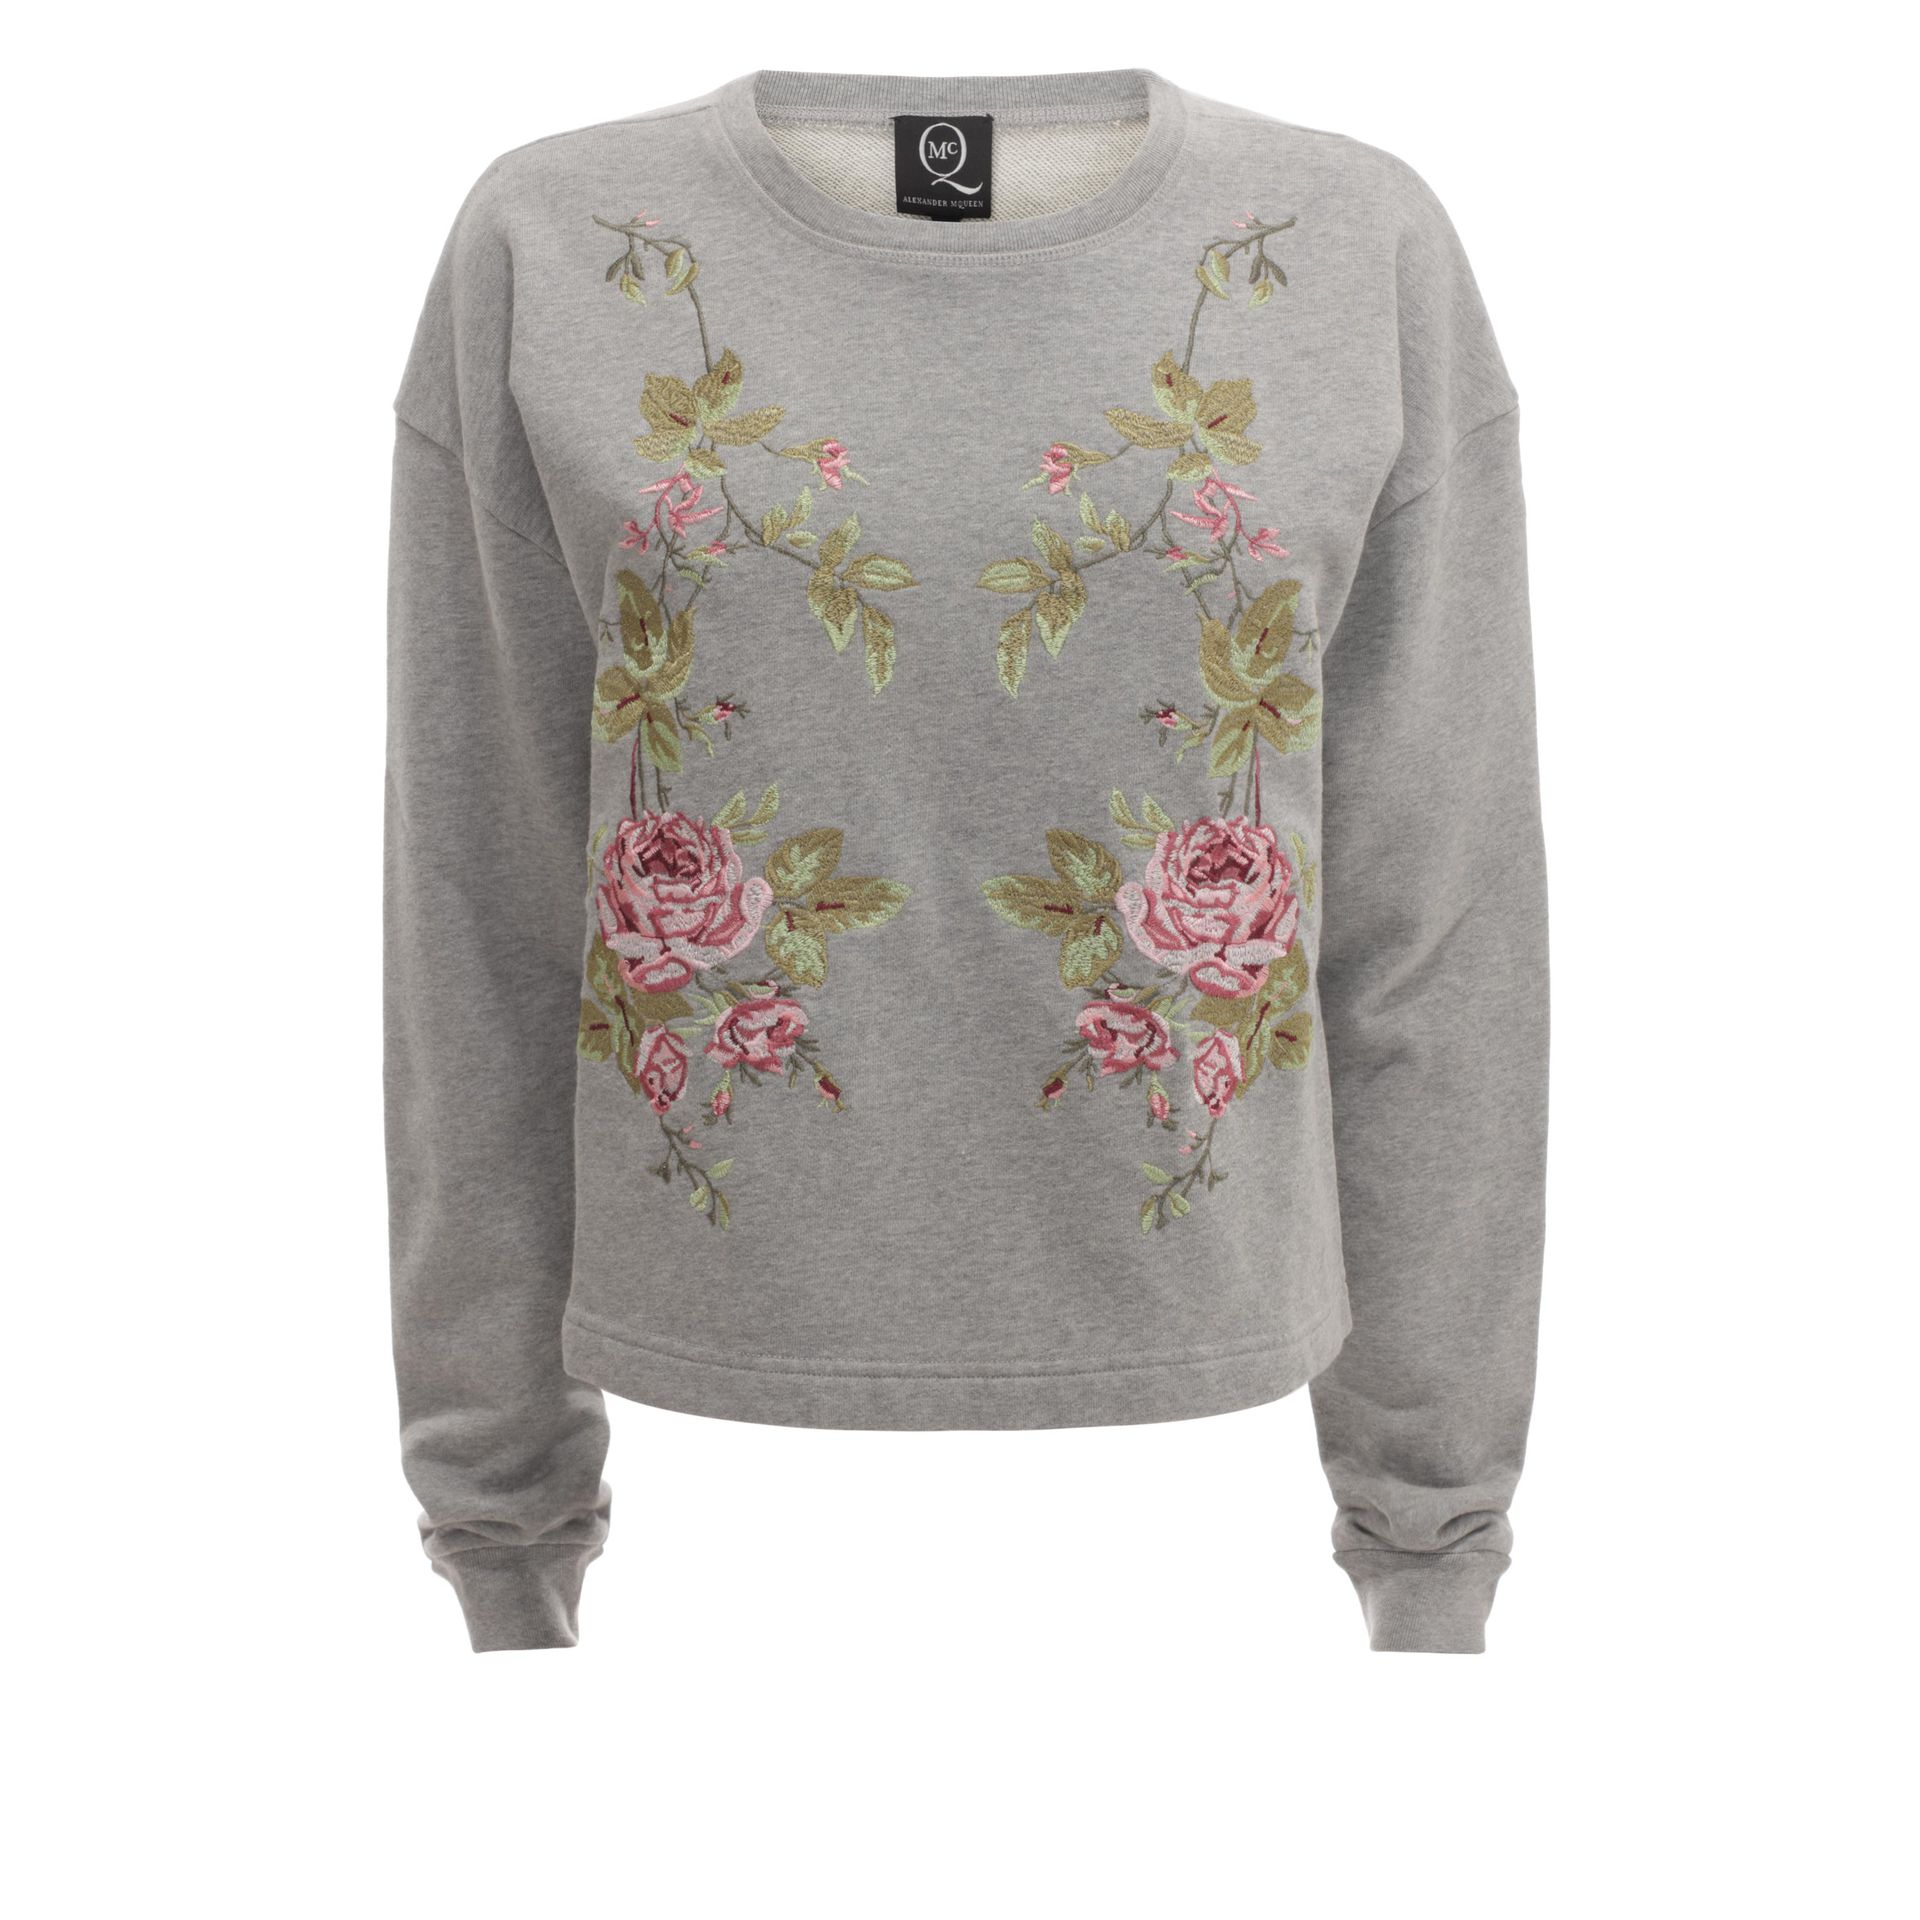 Lyst mcq rose embroidered sweatshirt in gray